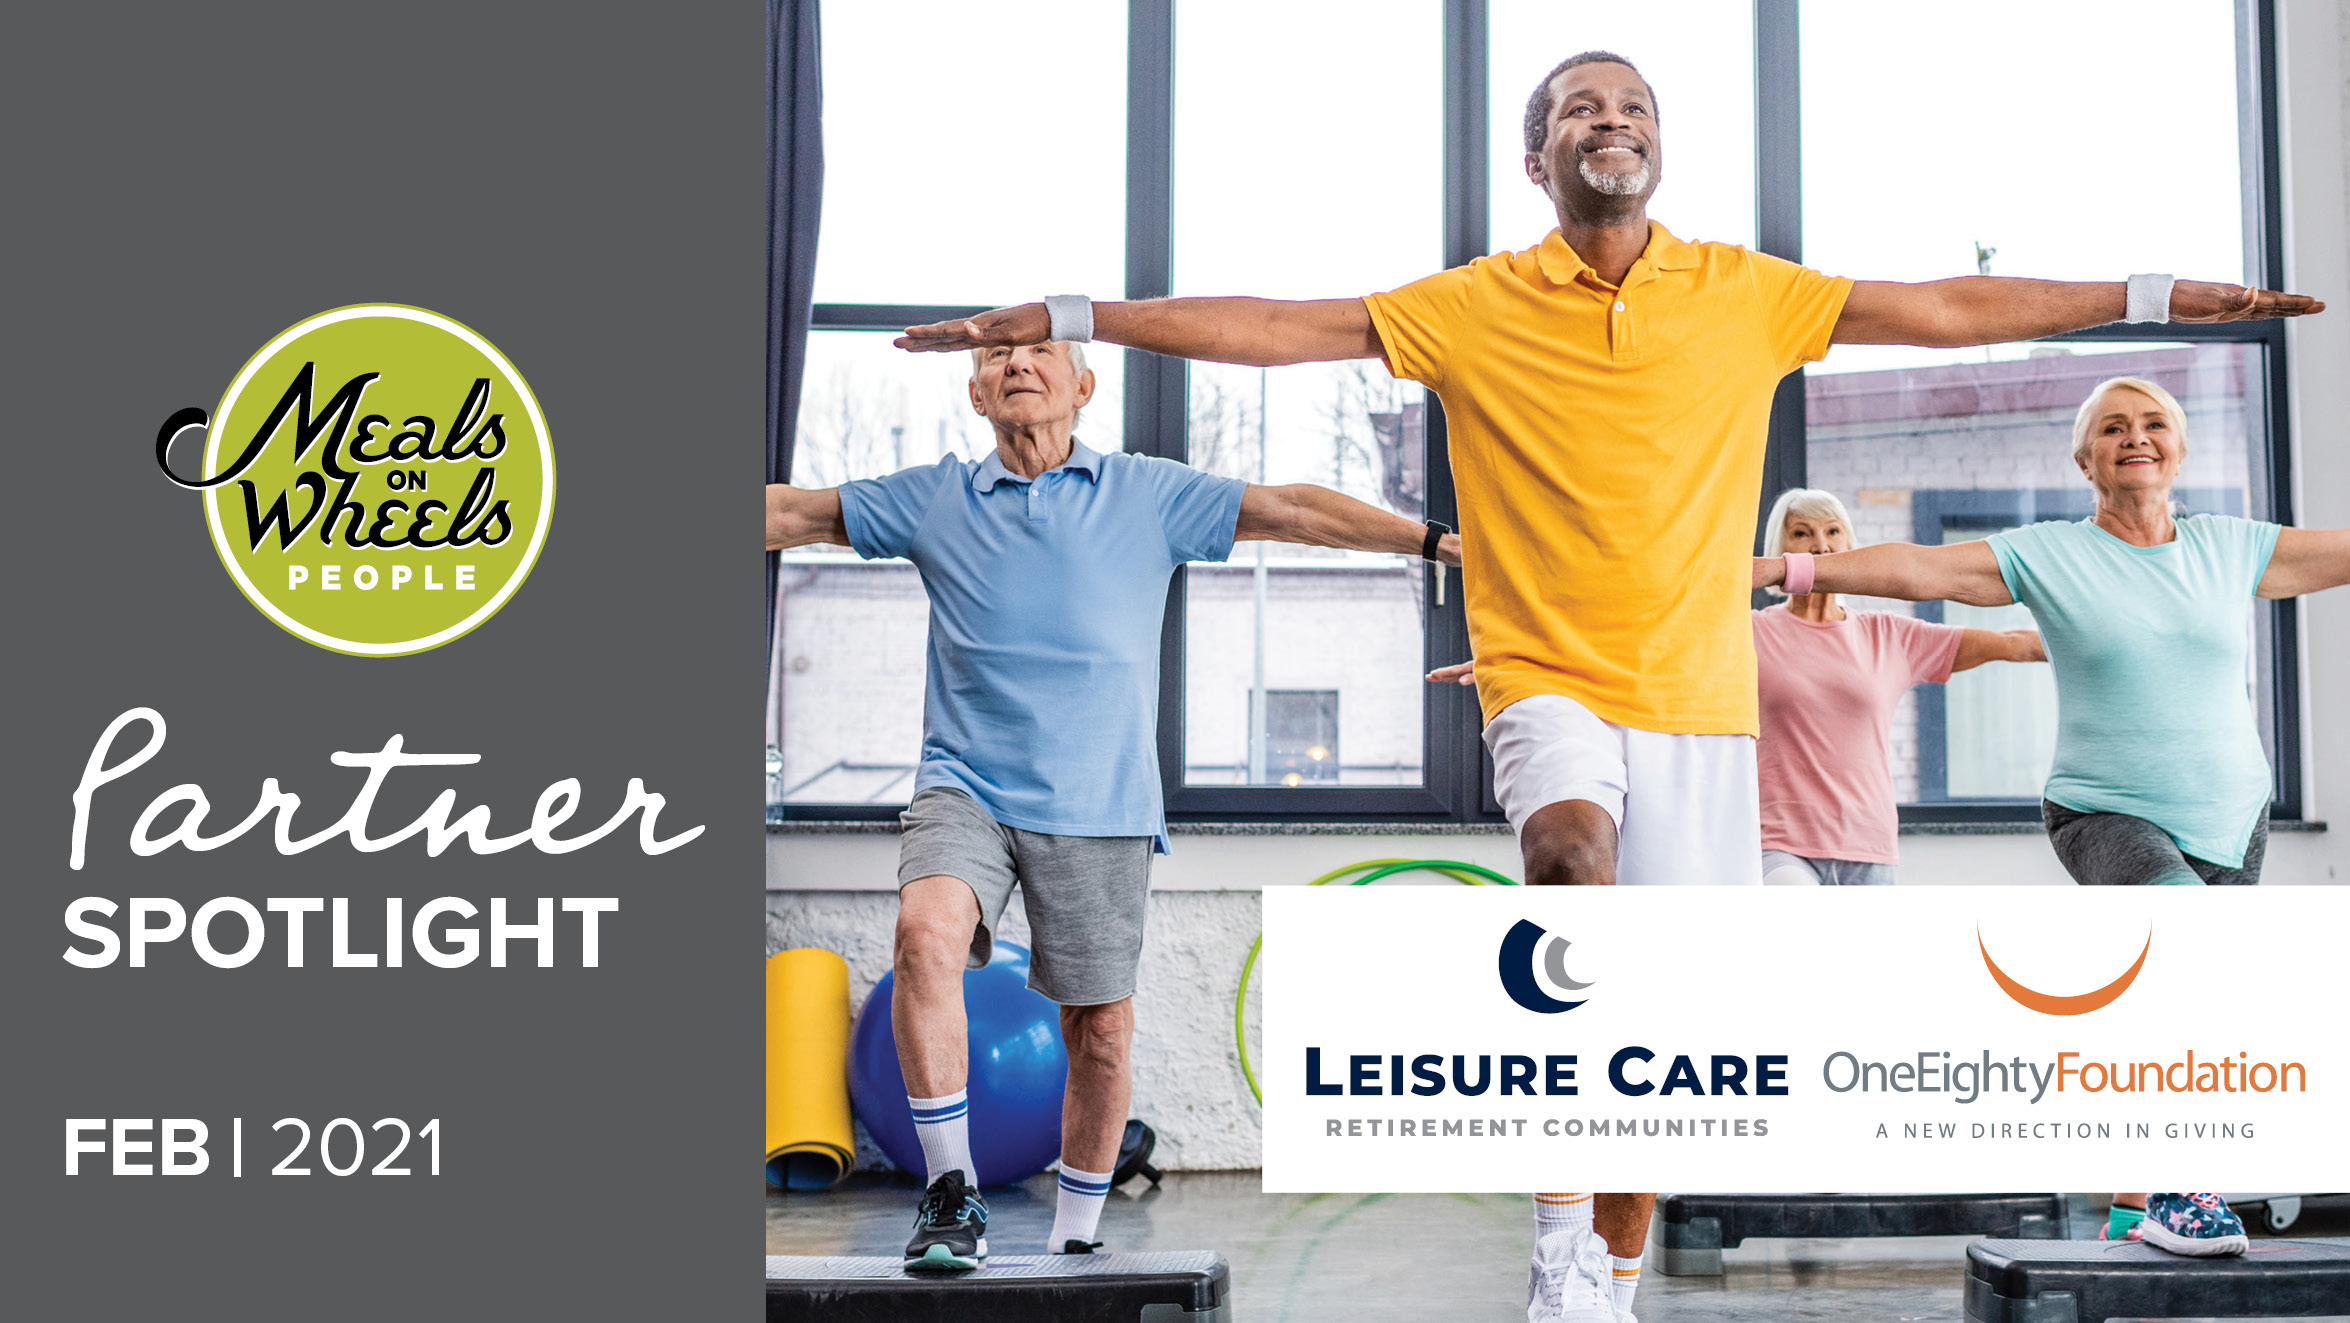 Leisure Care and One Eighty Foundation